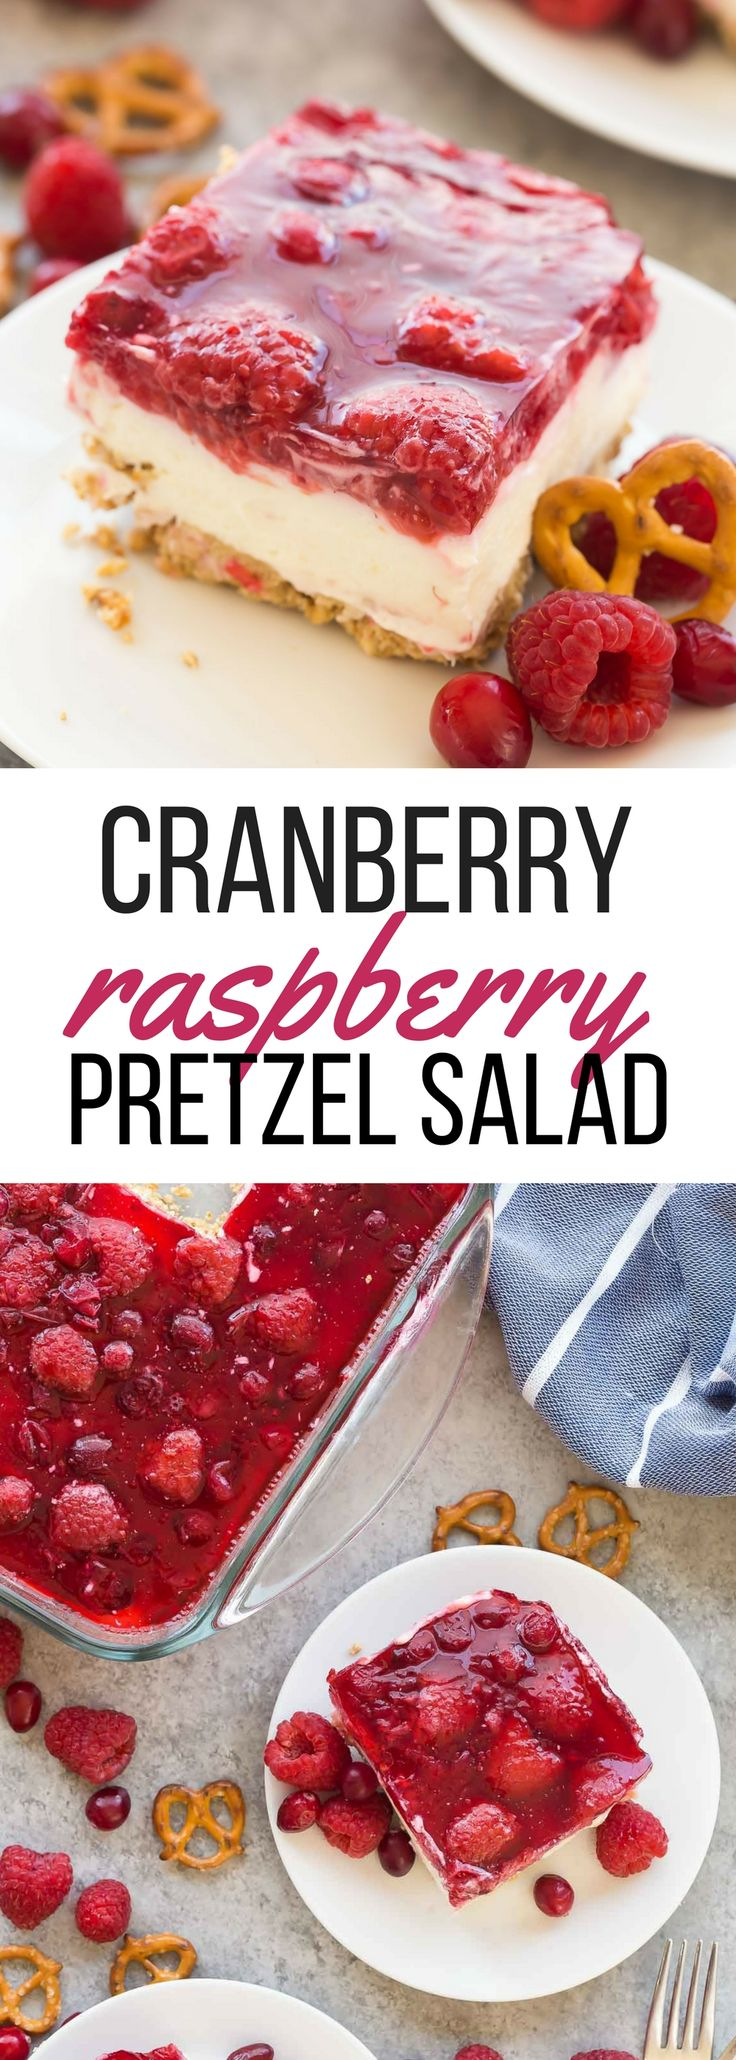 This Cranberry Raspberry Pretzel Salad Dessert is an easy holiday dessert salad that will be a big hit at Christmas or Thanksgiving! Made with cream cheese, fresh fruit and real fruit juice instead of Jello and includes a step by step recipe video.